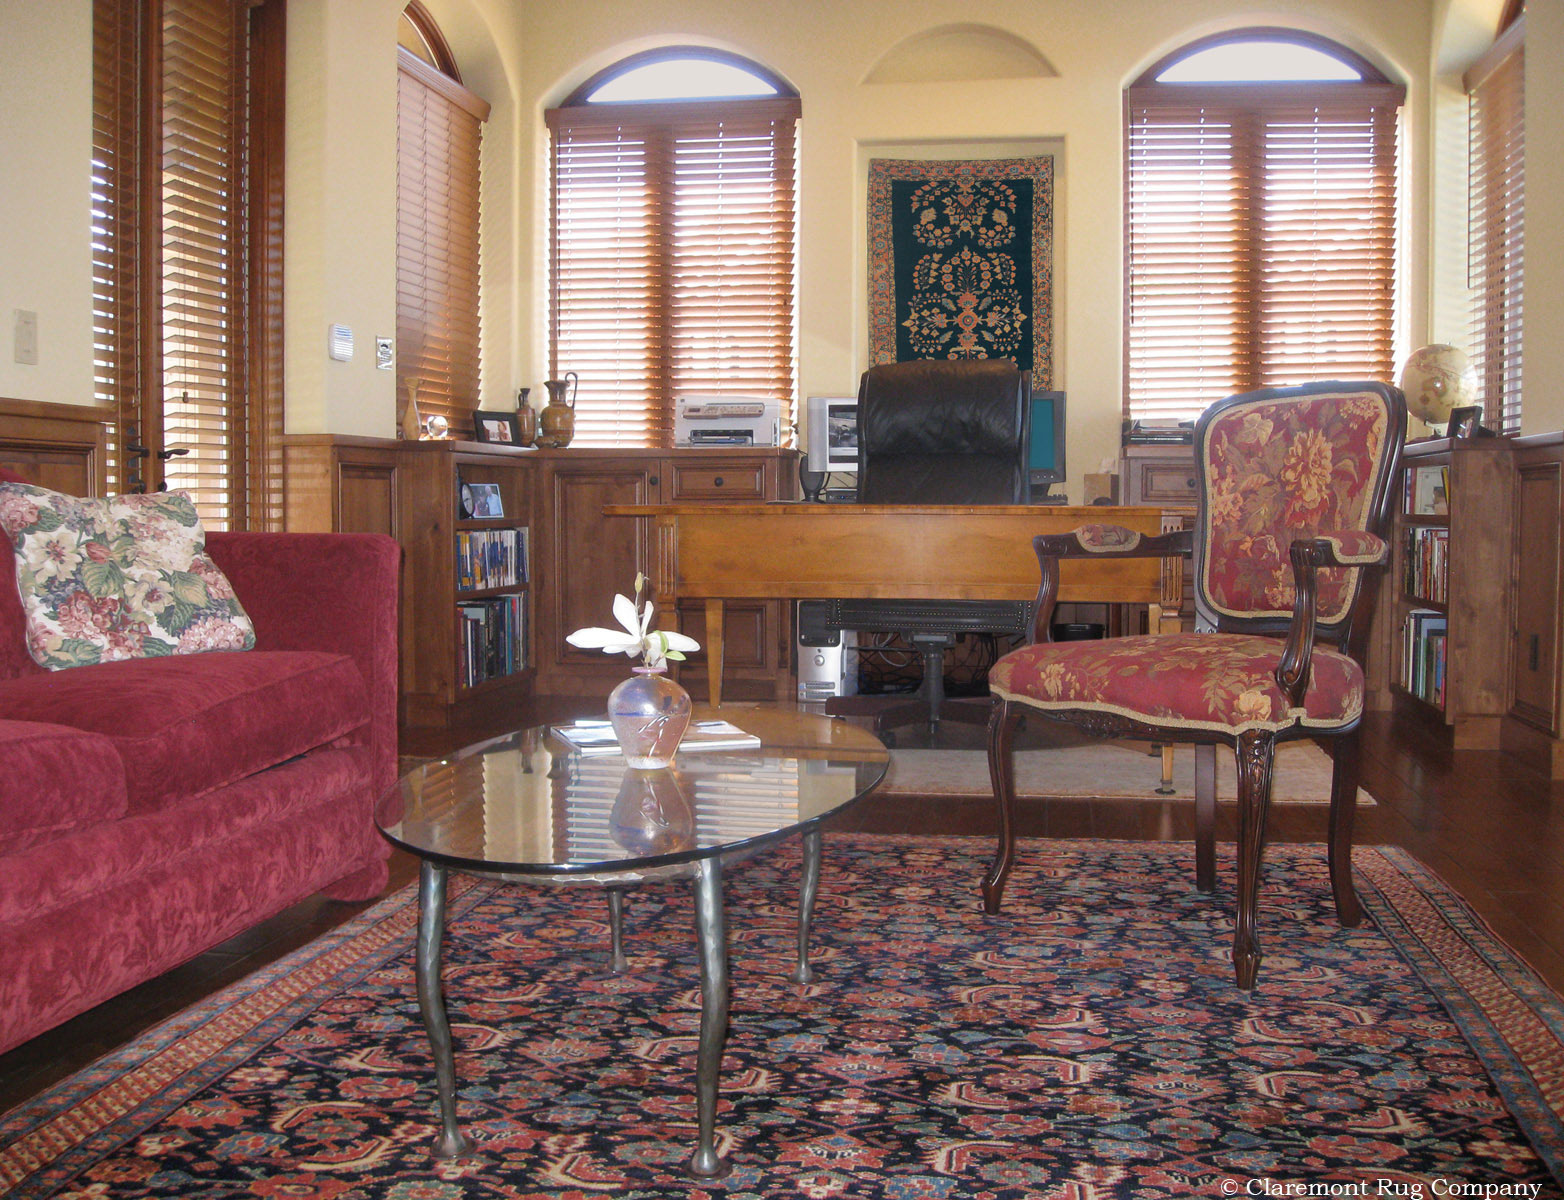 Antique Persian Rugs Displayed On Both Wall And Floor